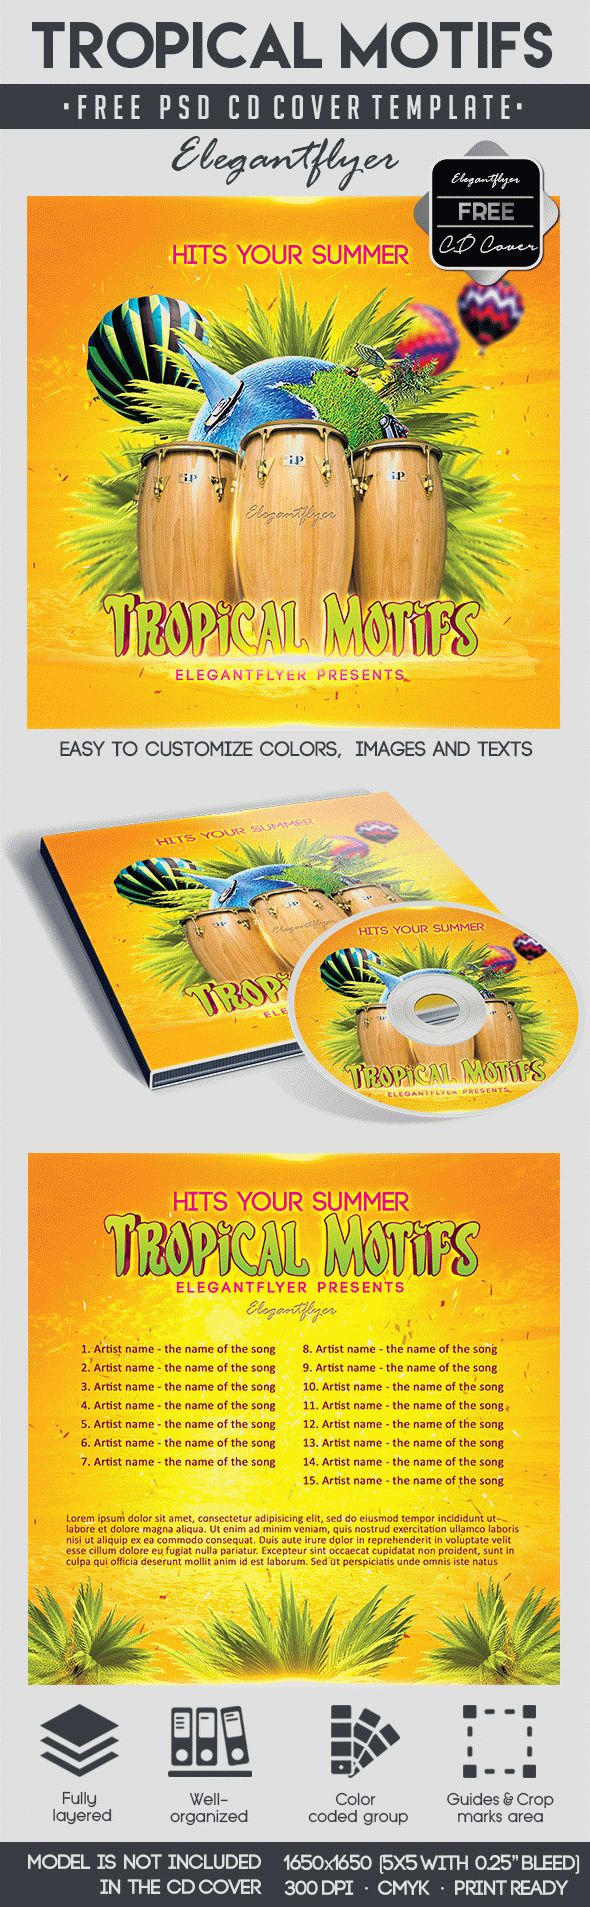 Tropical Motifs – Free CD Cover PSD Template